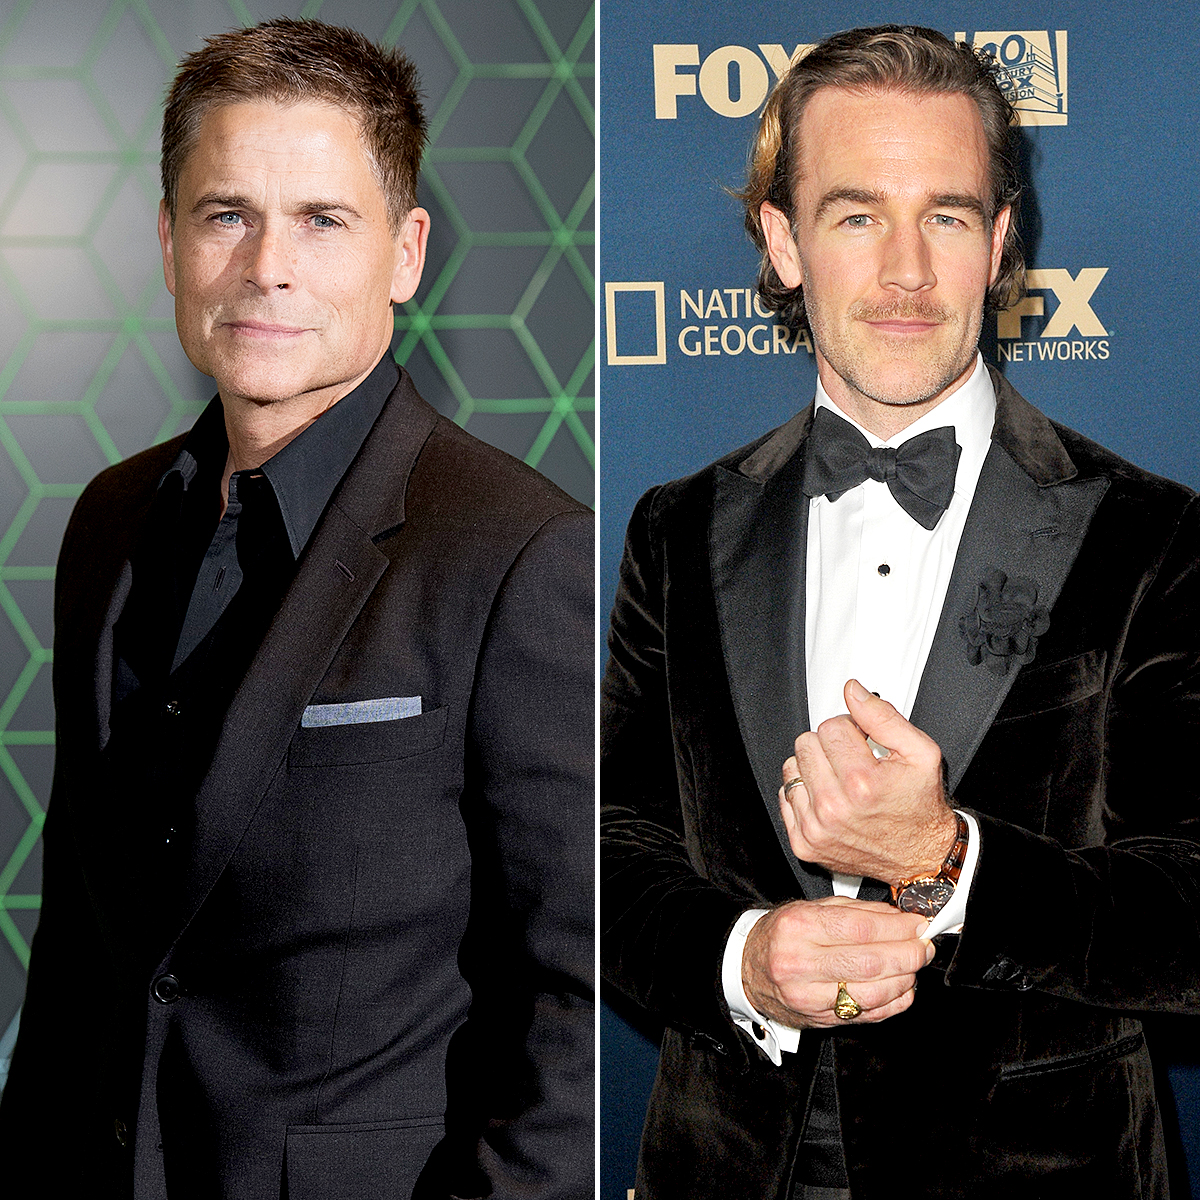 Rob-Lowe,-James-Van-Der-Beek,-More-Celebs-React-to-College-Admissions-Scam